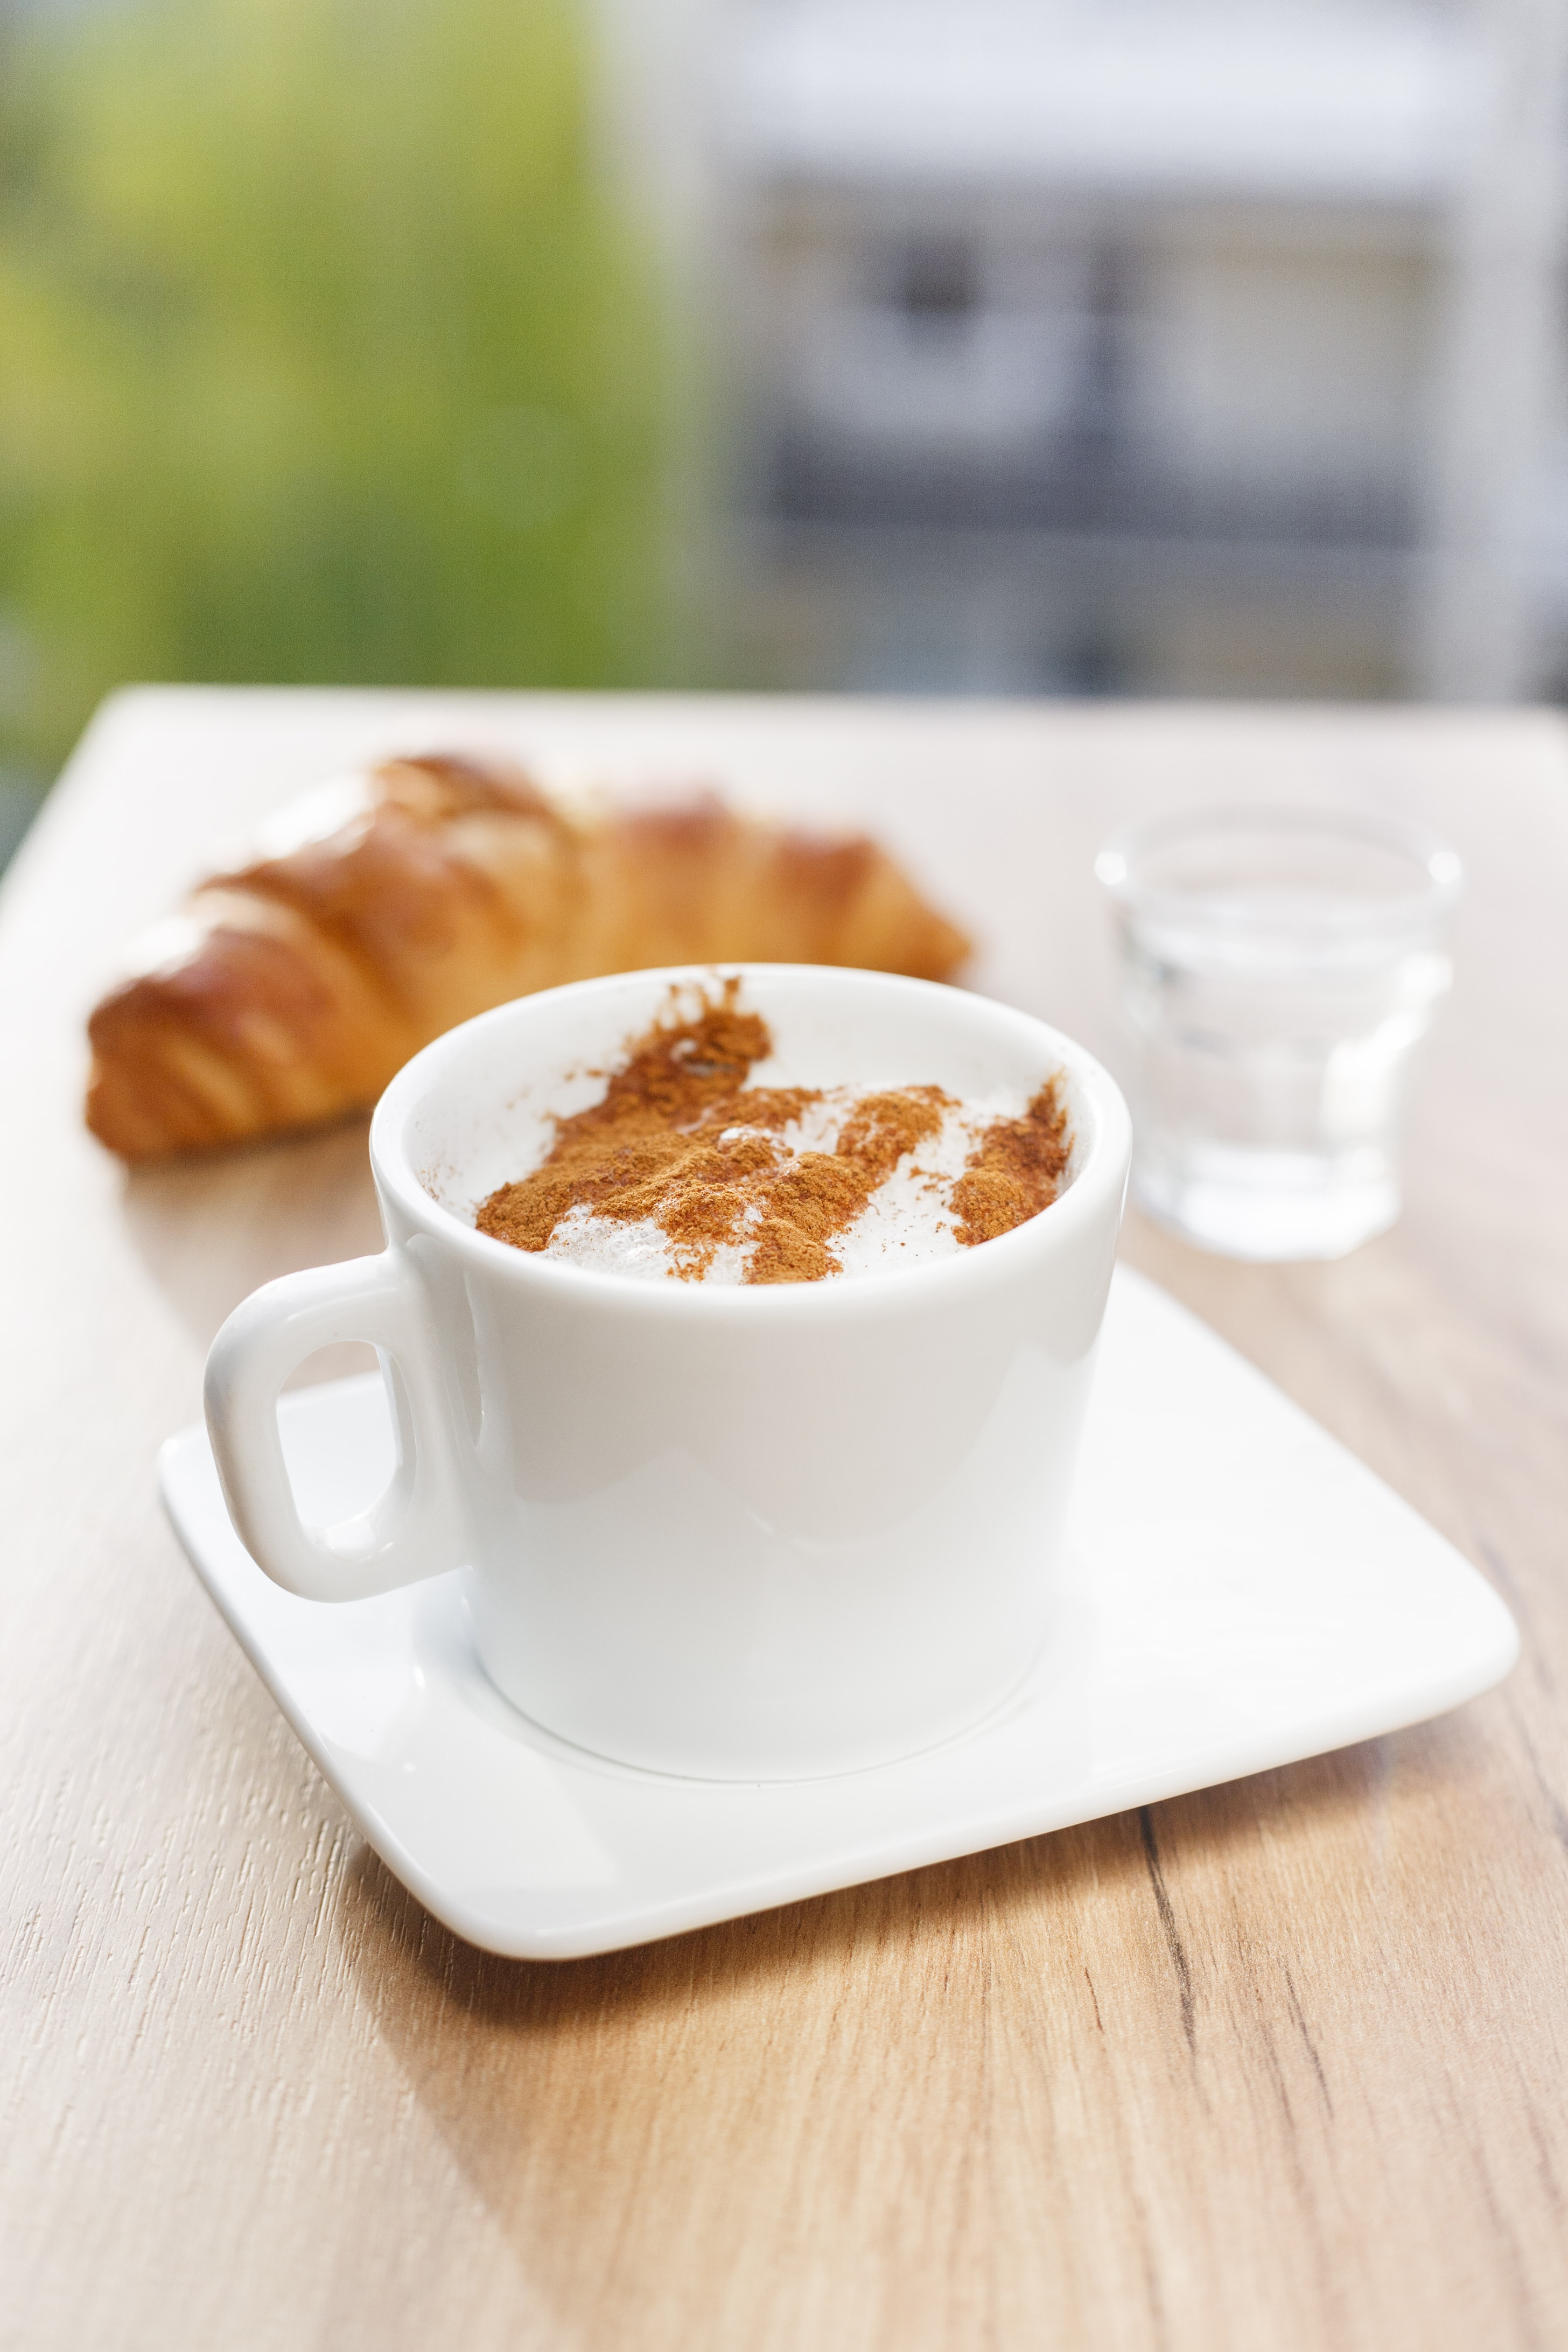 Cappuccino in a white mug and saucer with cinnamon on top and a croissant in the background